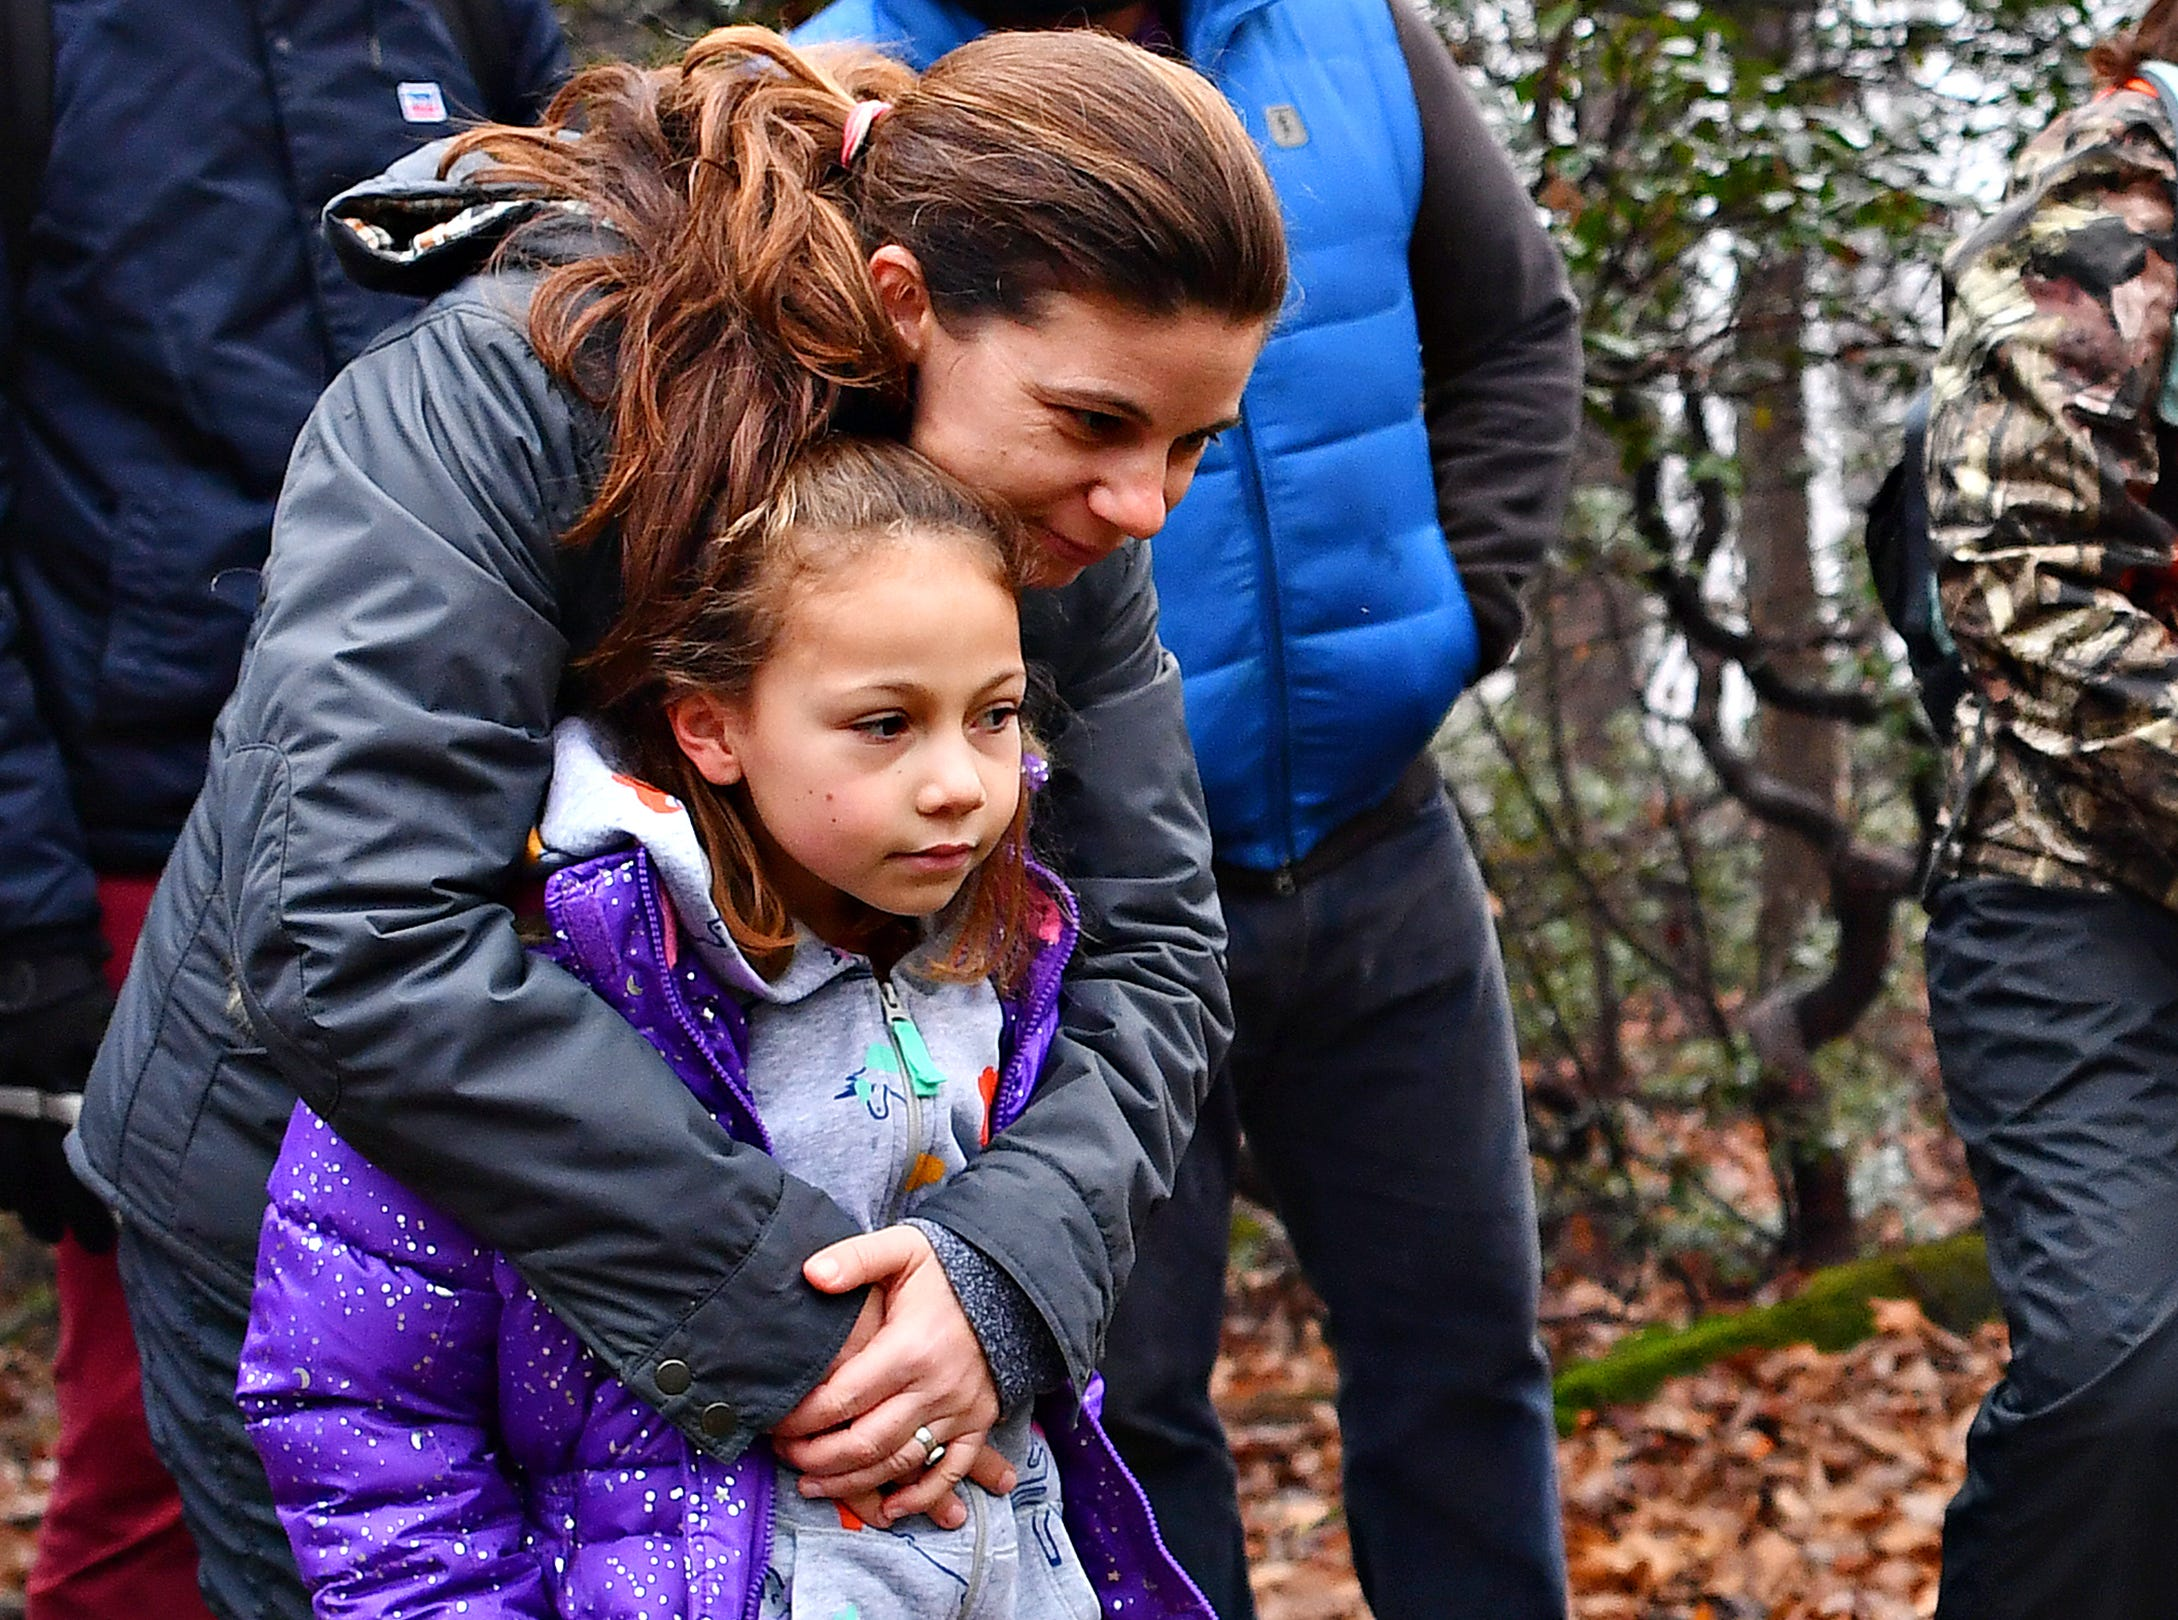 Matilda Hernandez, 7, is hugged by her mother Tiffany Butler, both of Yucatan, Mexico, as York County Parks Naturalist Kelsey Frey leads a Marshmallow Hike at Rocky Ridge Park in Springettsbury Township, Friday, Dec. 28, 2018. Dawn J. Sagert photo